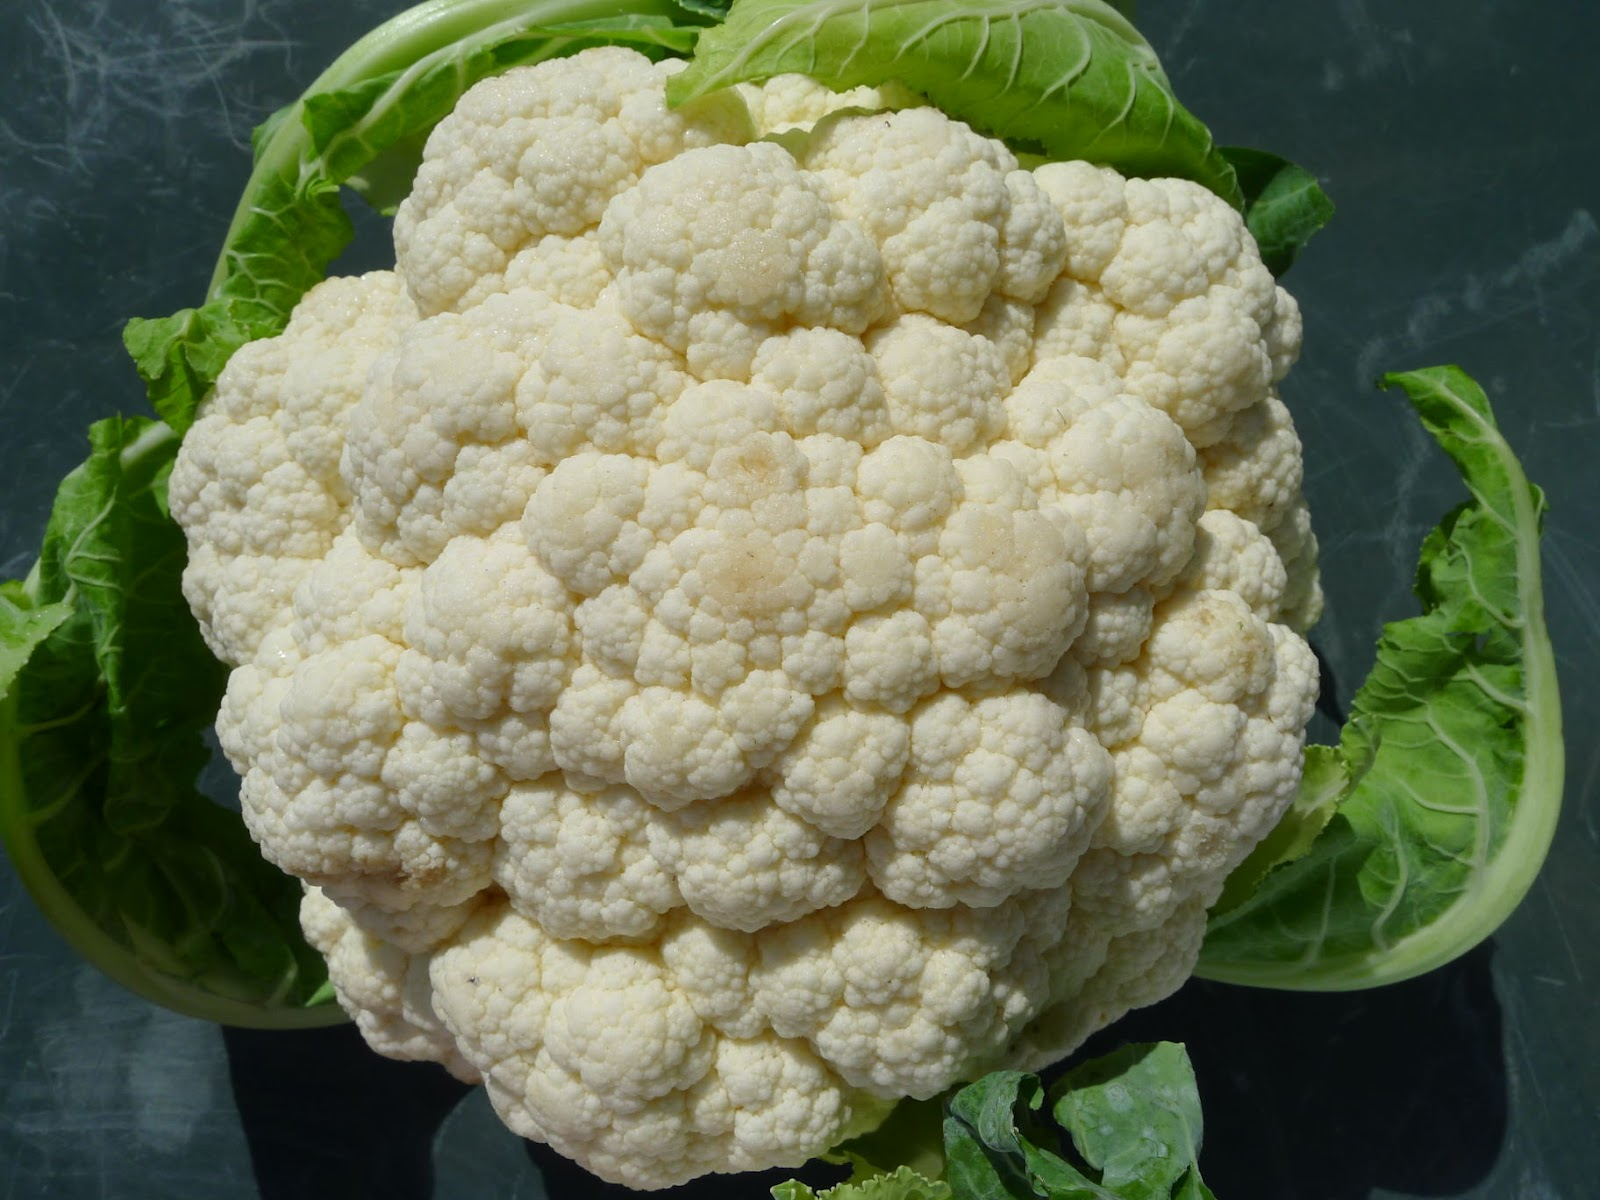 MY KITCHEN IN SPAIN: HAIL, FAIR CAULIFLOWER